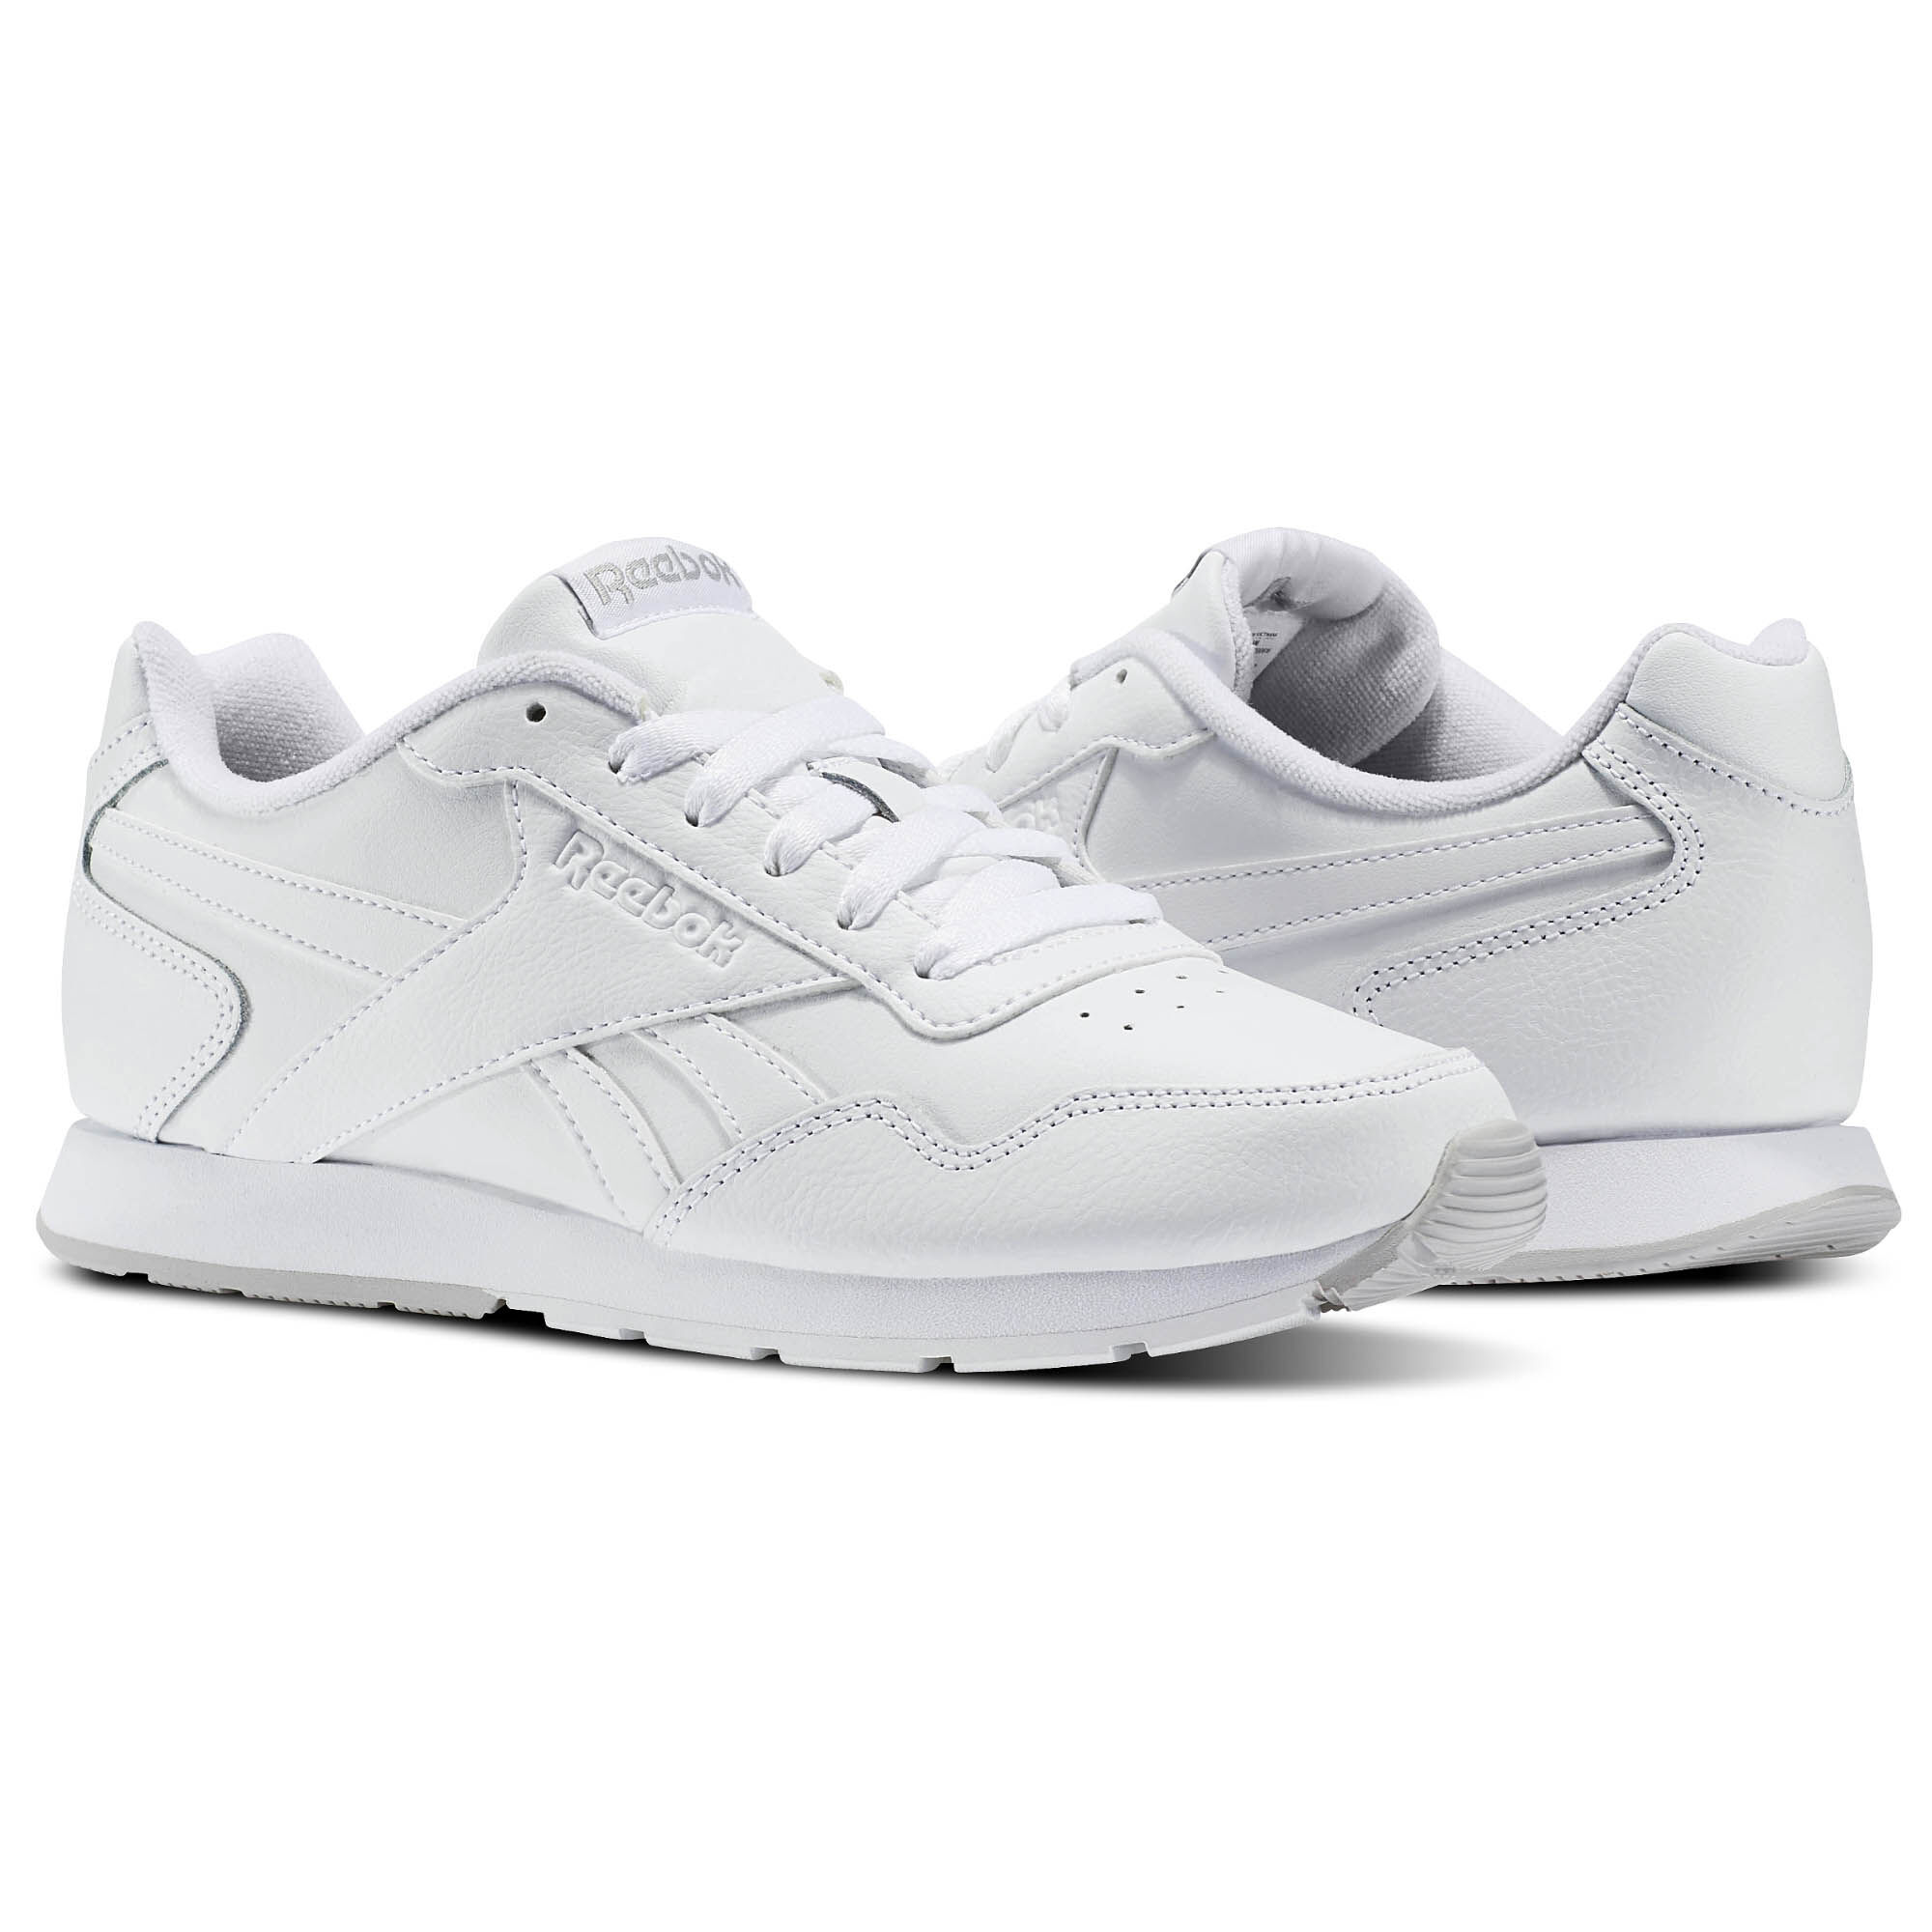 reebok shoes classic colorways meaning of colors